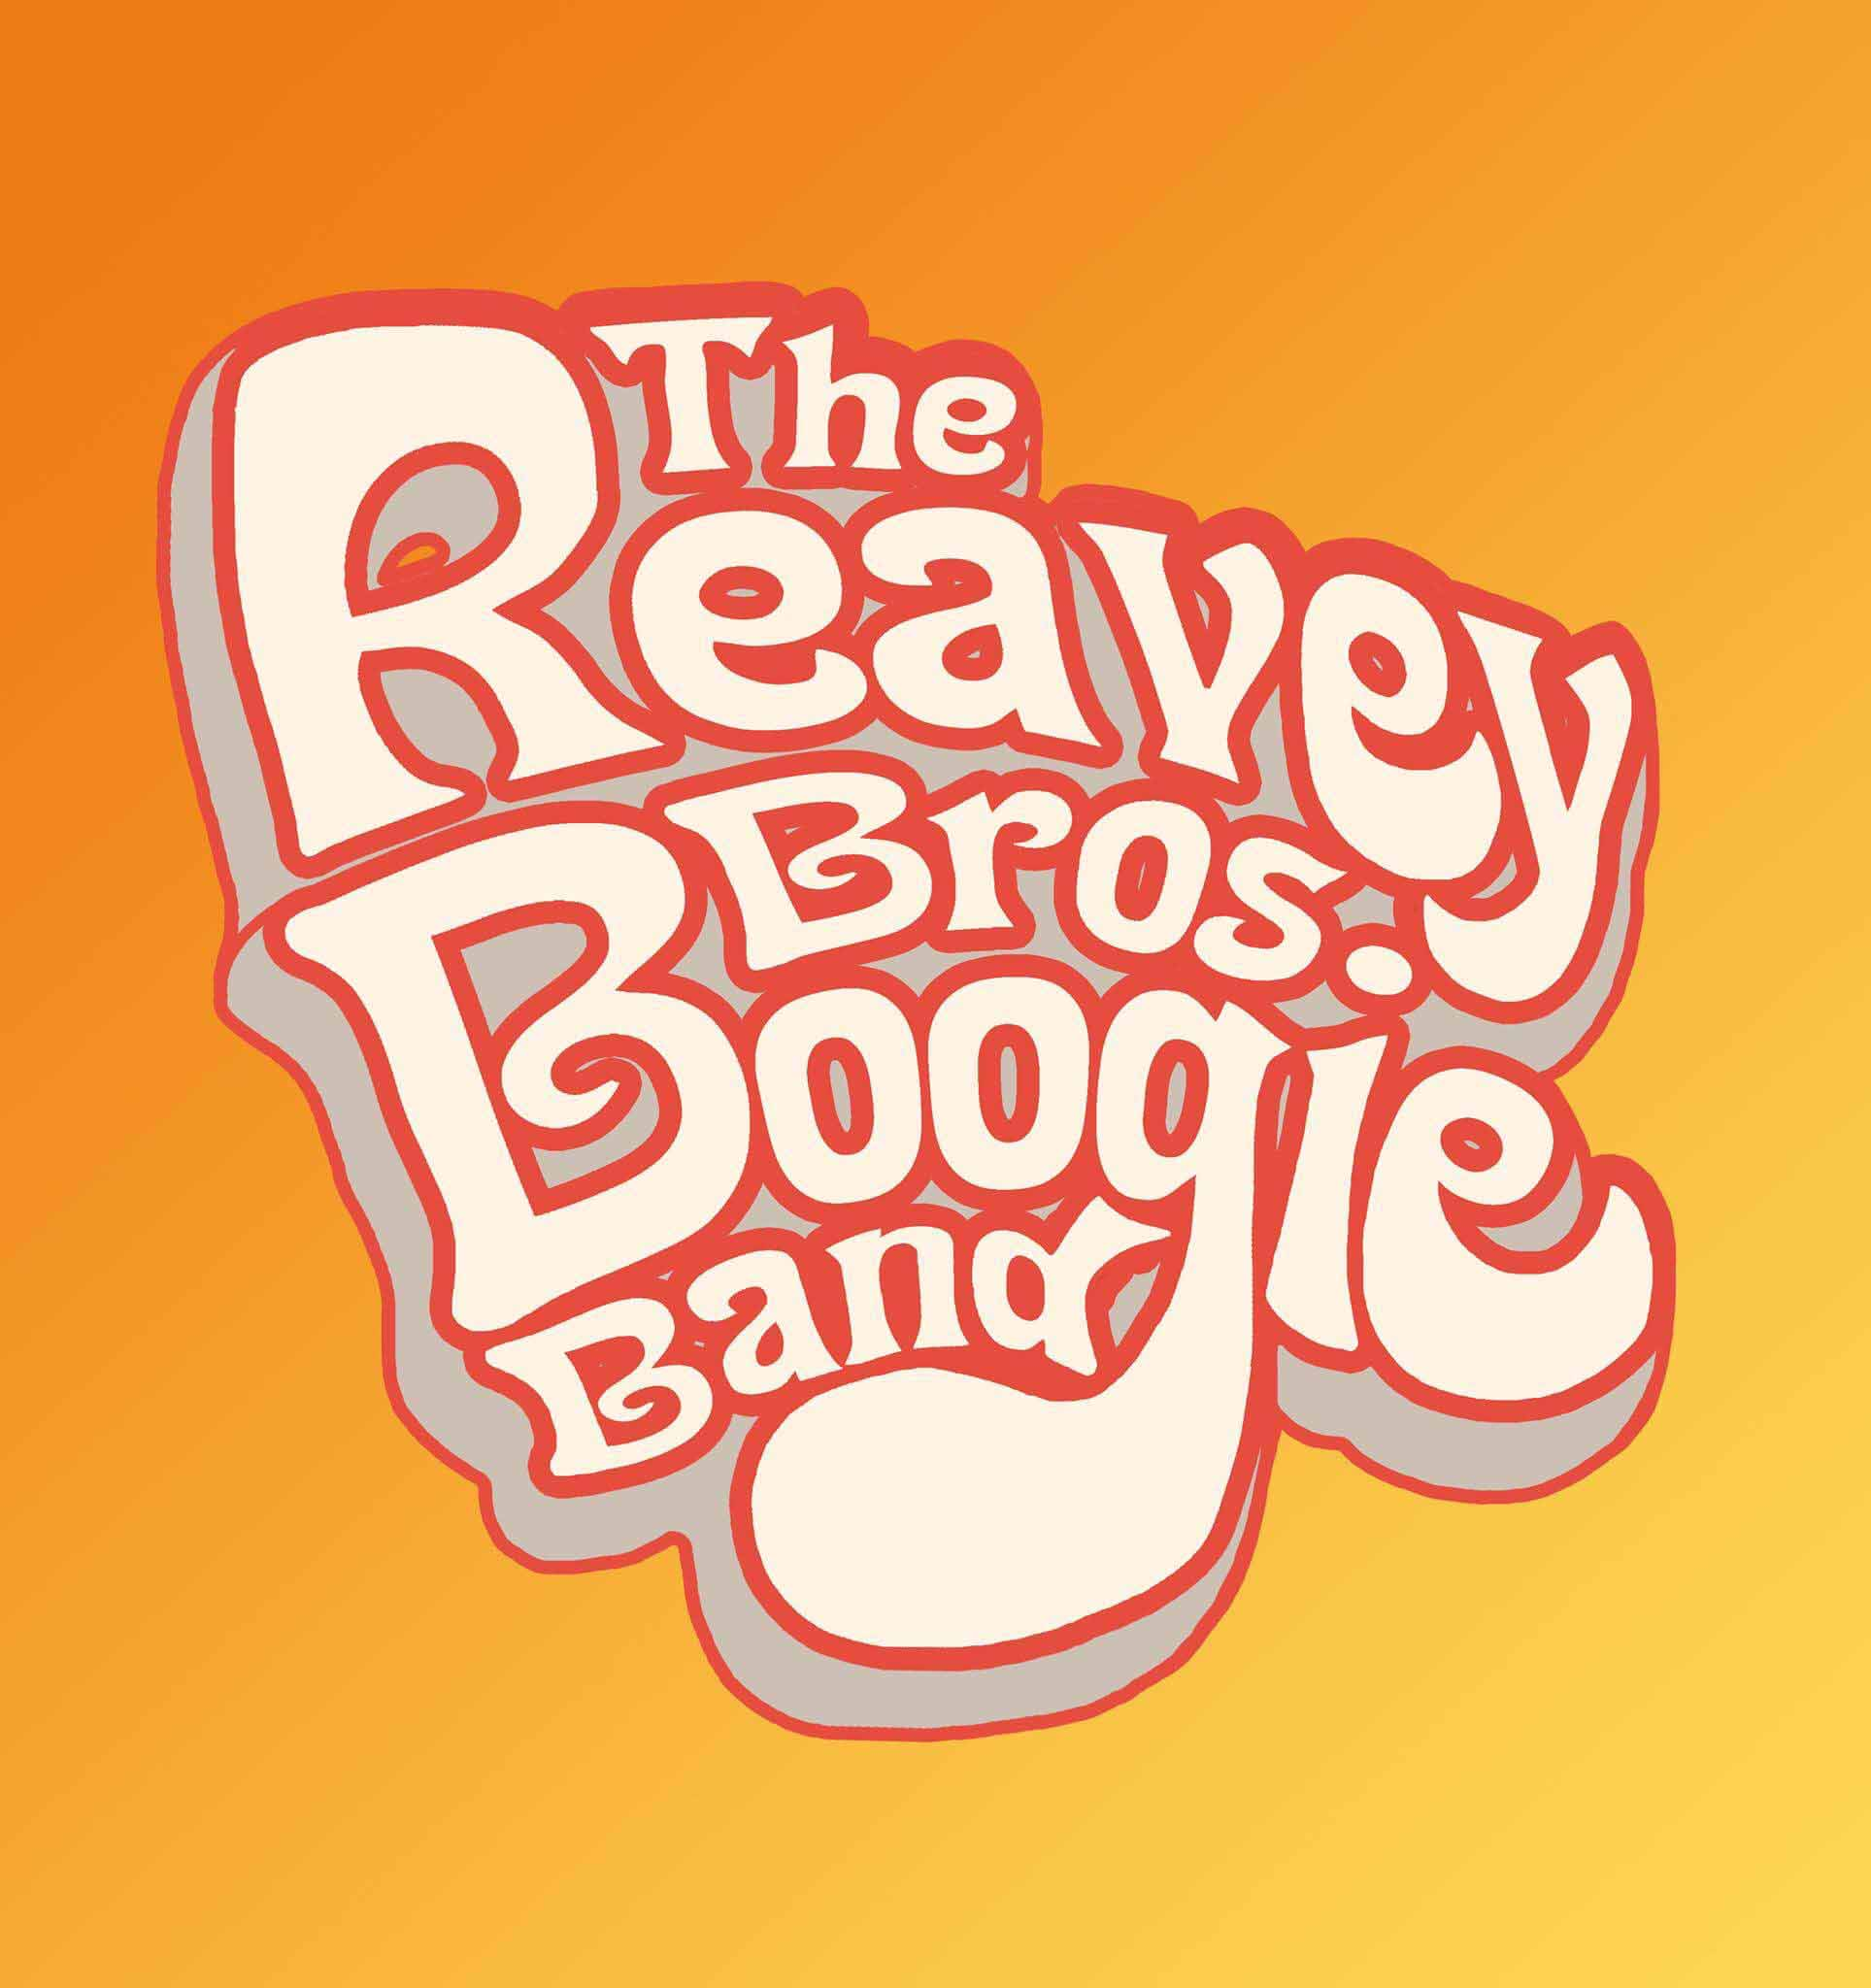 Reavey Bros Boogie Band